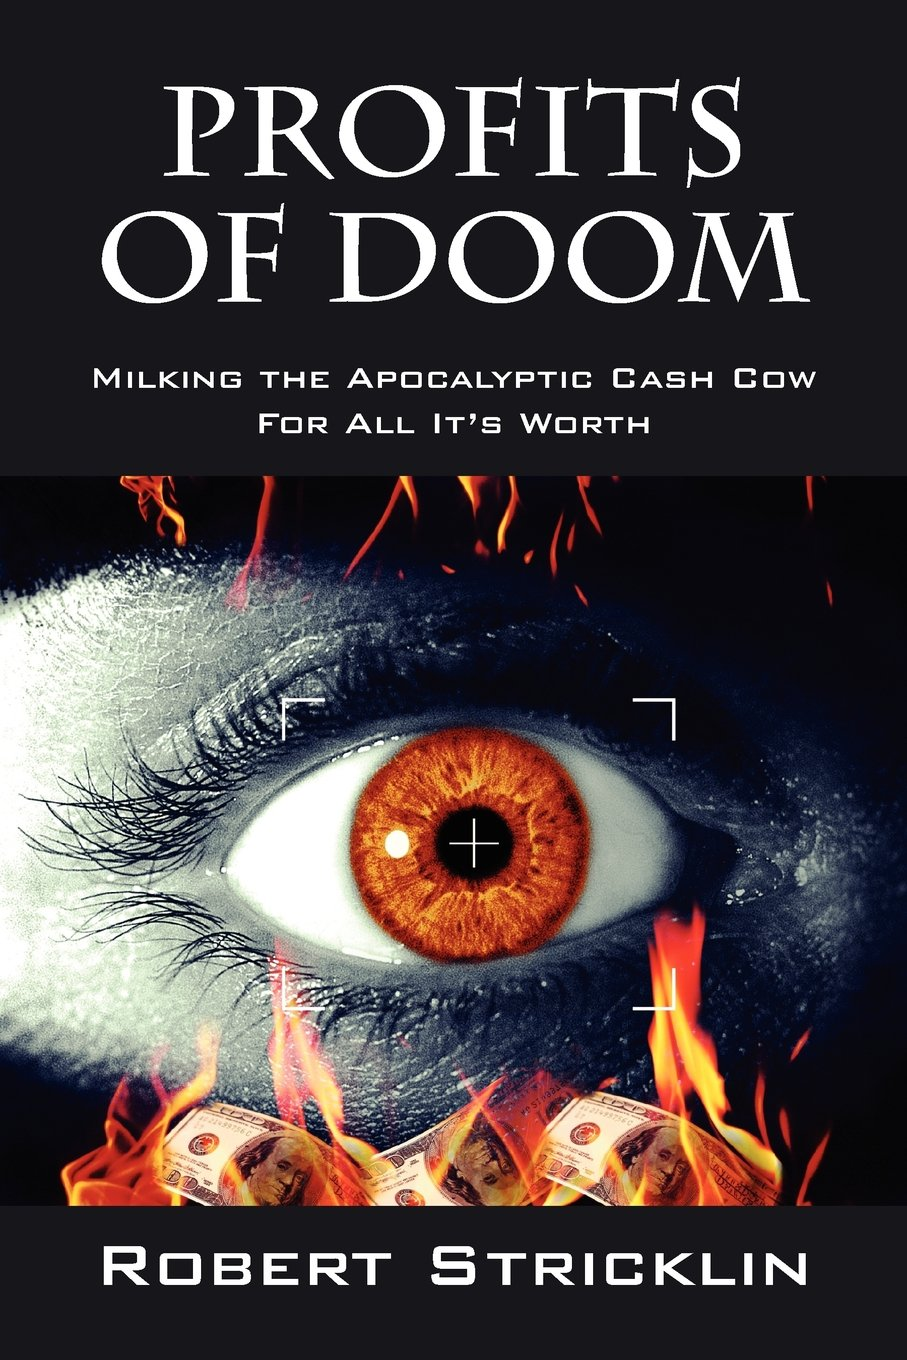 Profits of Doom: Milking the Apocalyptic Cash Cow for All It's Worth PDF